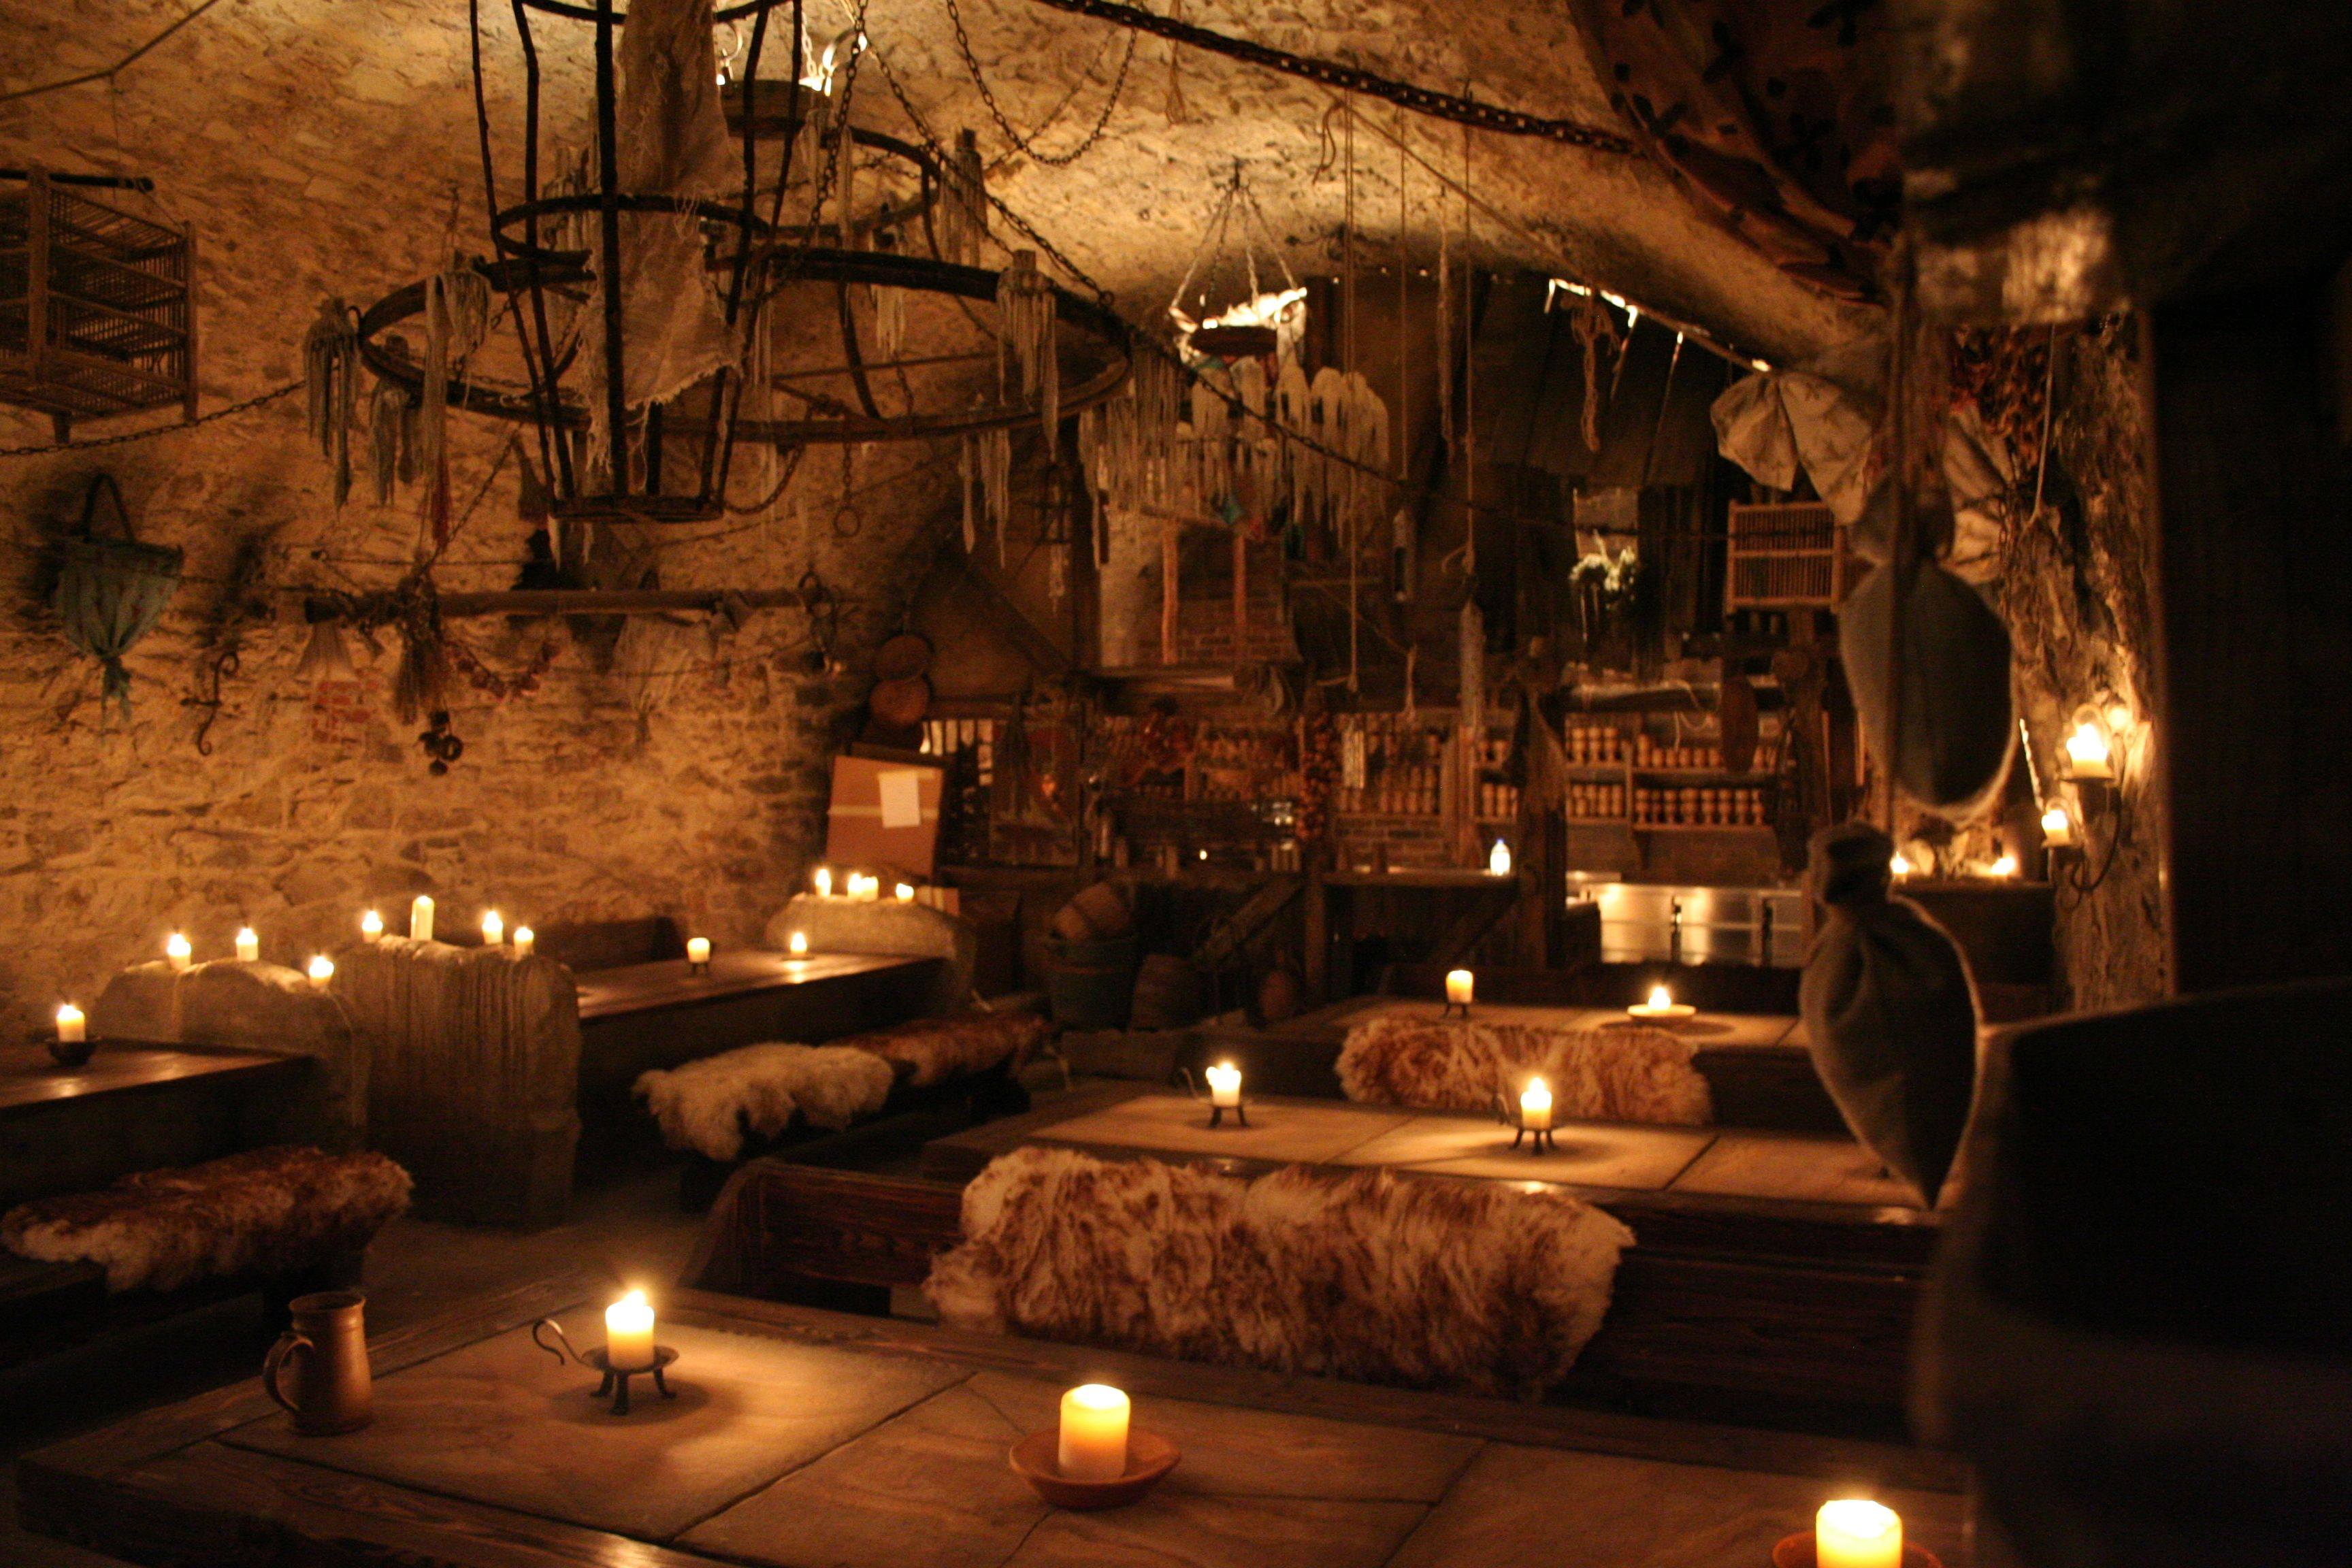 Seating areas for the Medieval dinner in Prague